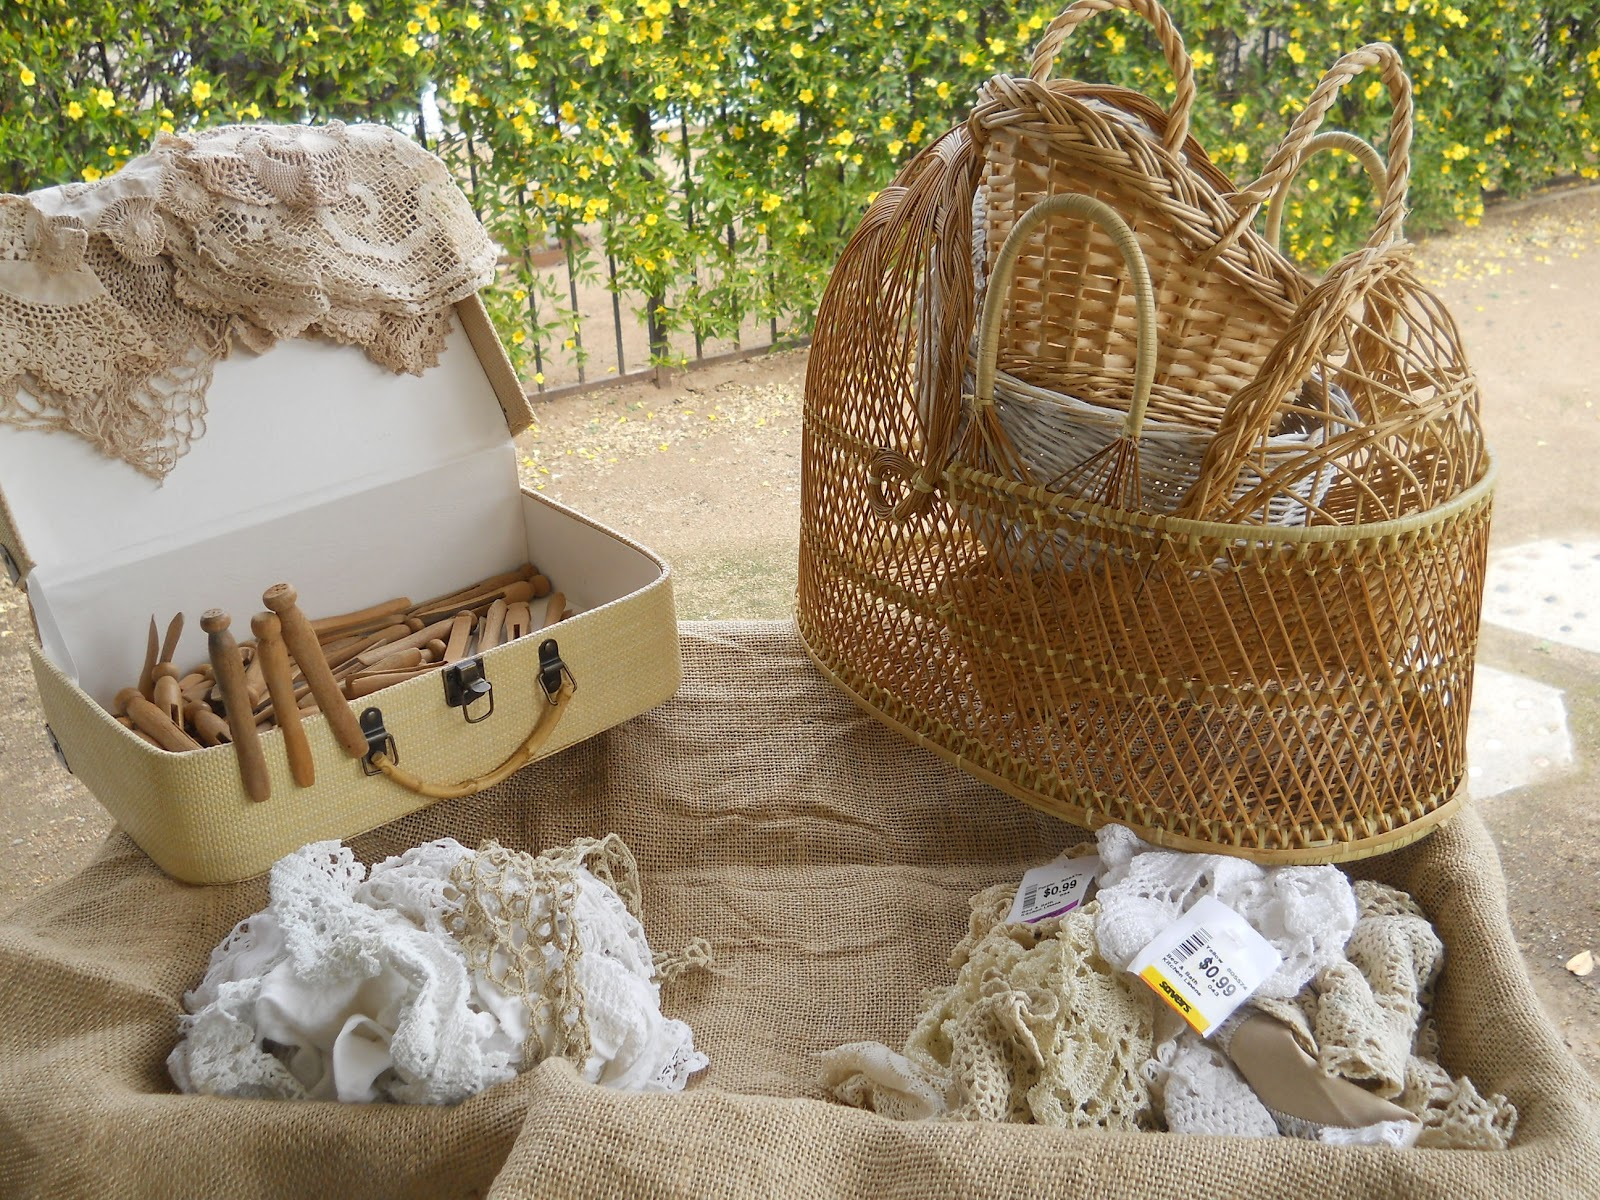 Collections Included Lace Doilies, Baby Baskets, Burlap And Old Clothespins